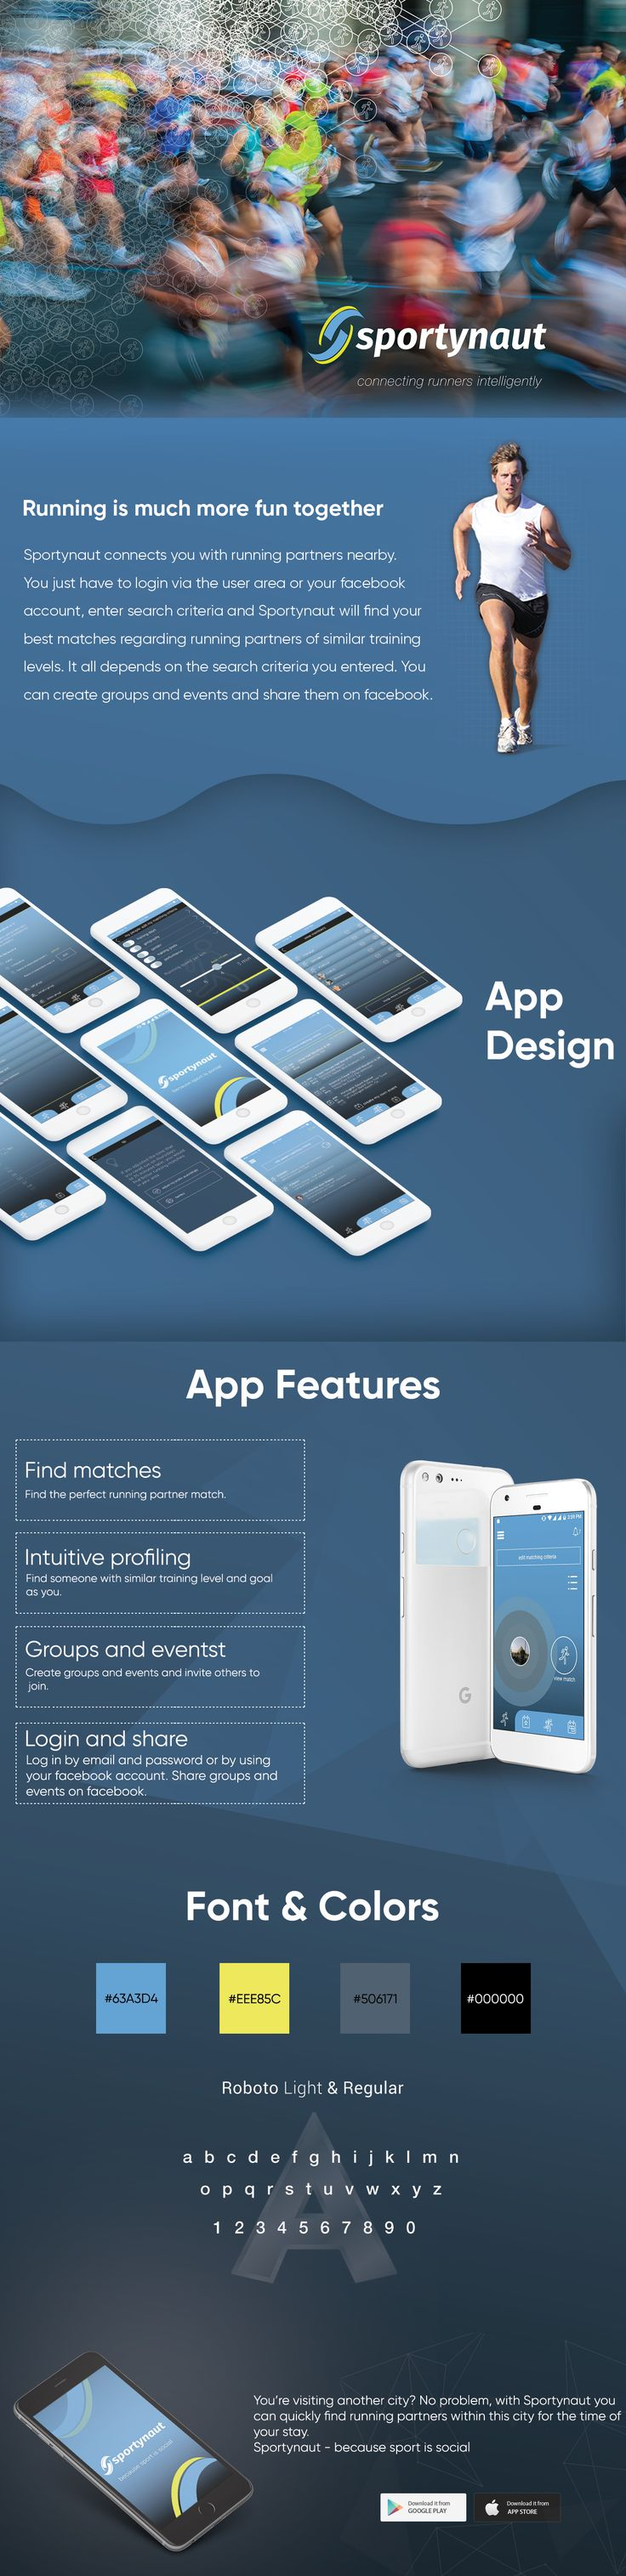 """Check out our @Behance project: """" #Sports #Social Network #App (SportyNaut)"""" #iphoneapp #androidapp #ui #ux #design"""